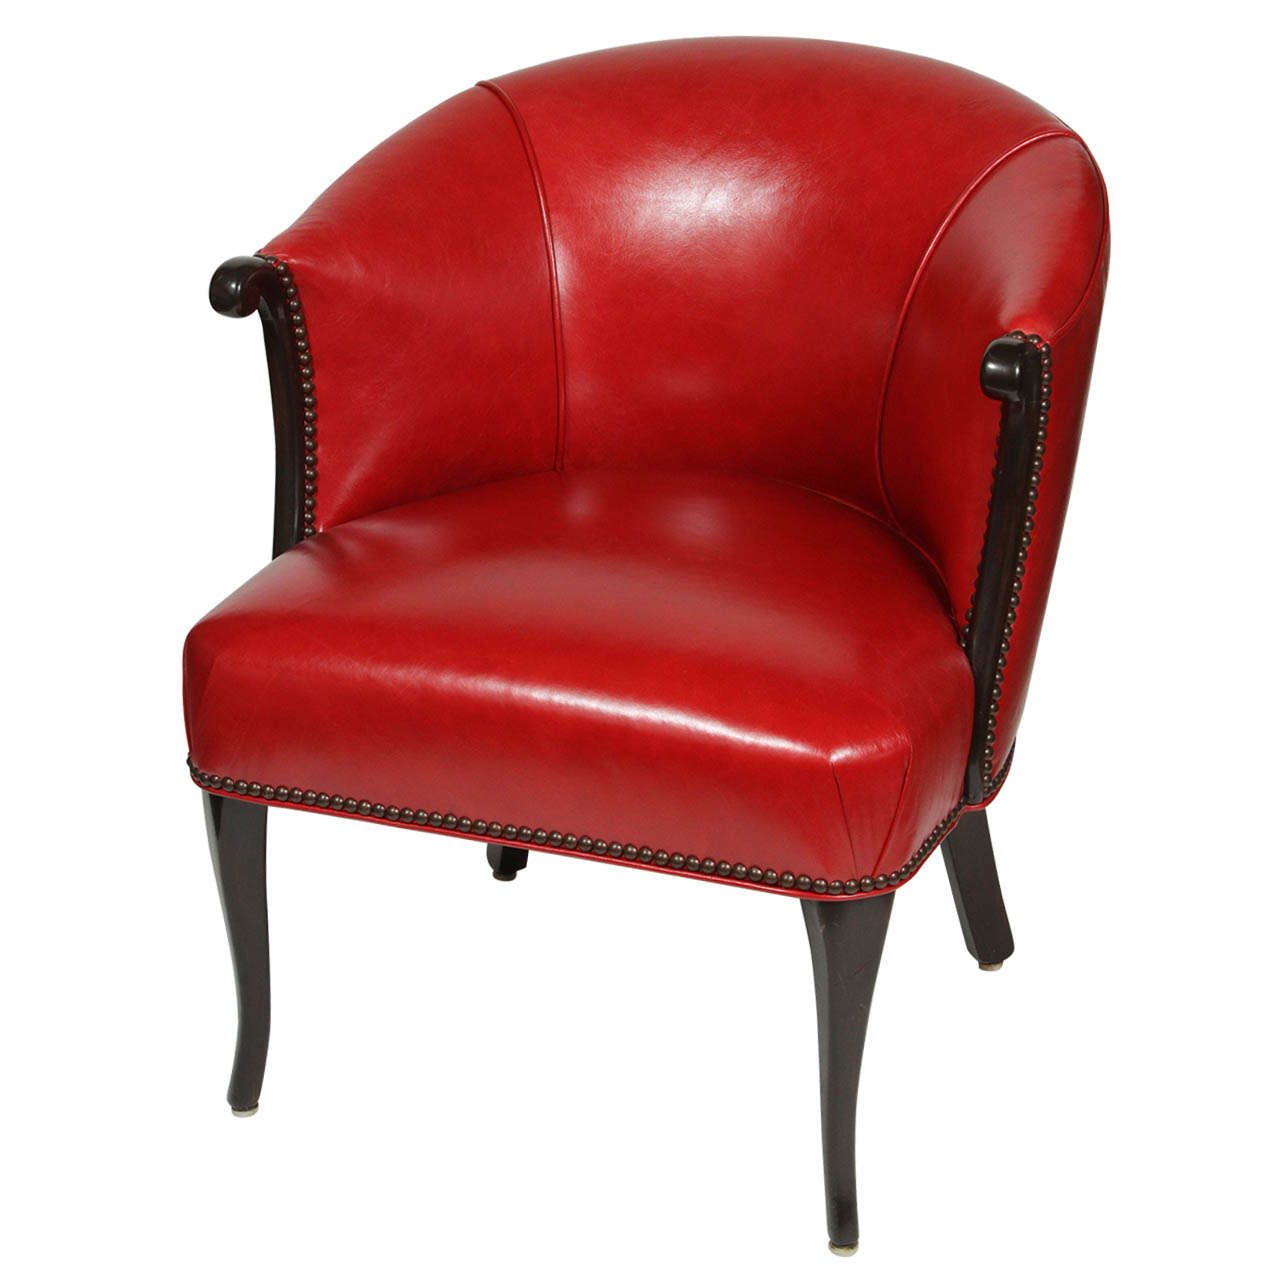 Awesome Red Leather Barrel Chair At 1Stdibs Unemploymentrelief Wooden Chair Designs For Living Room Unemploymentrelieforg